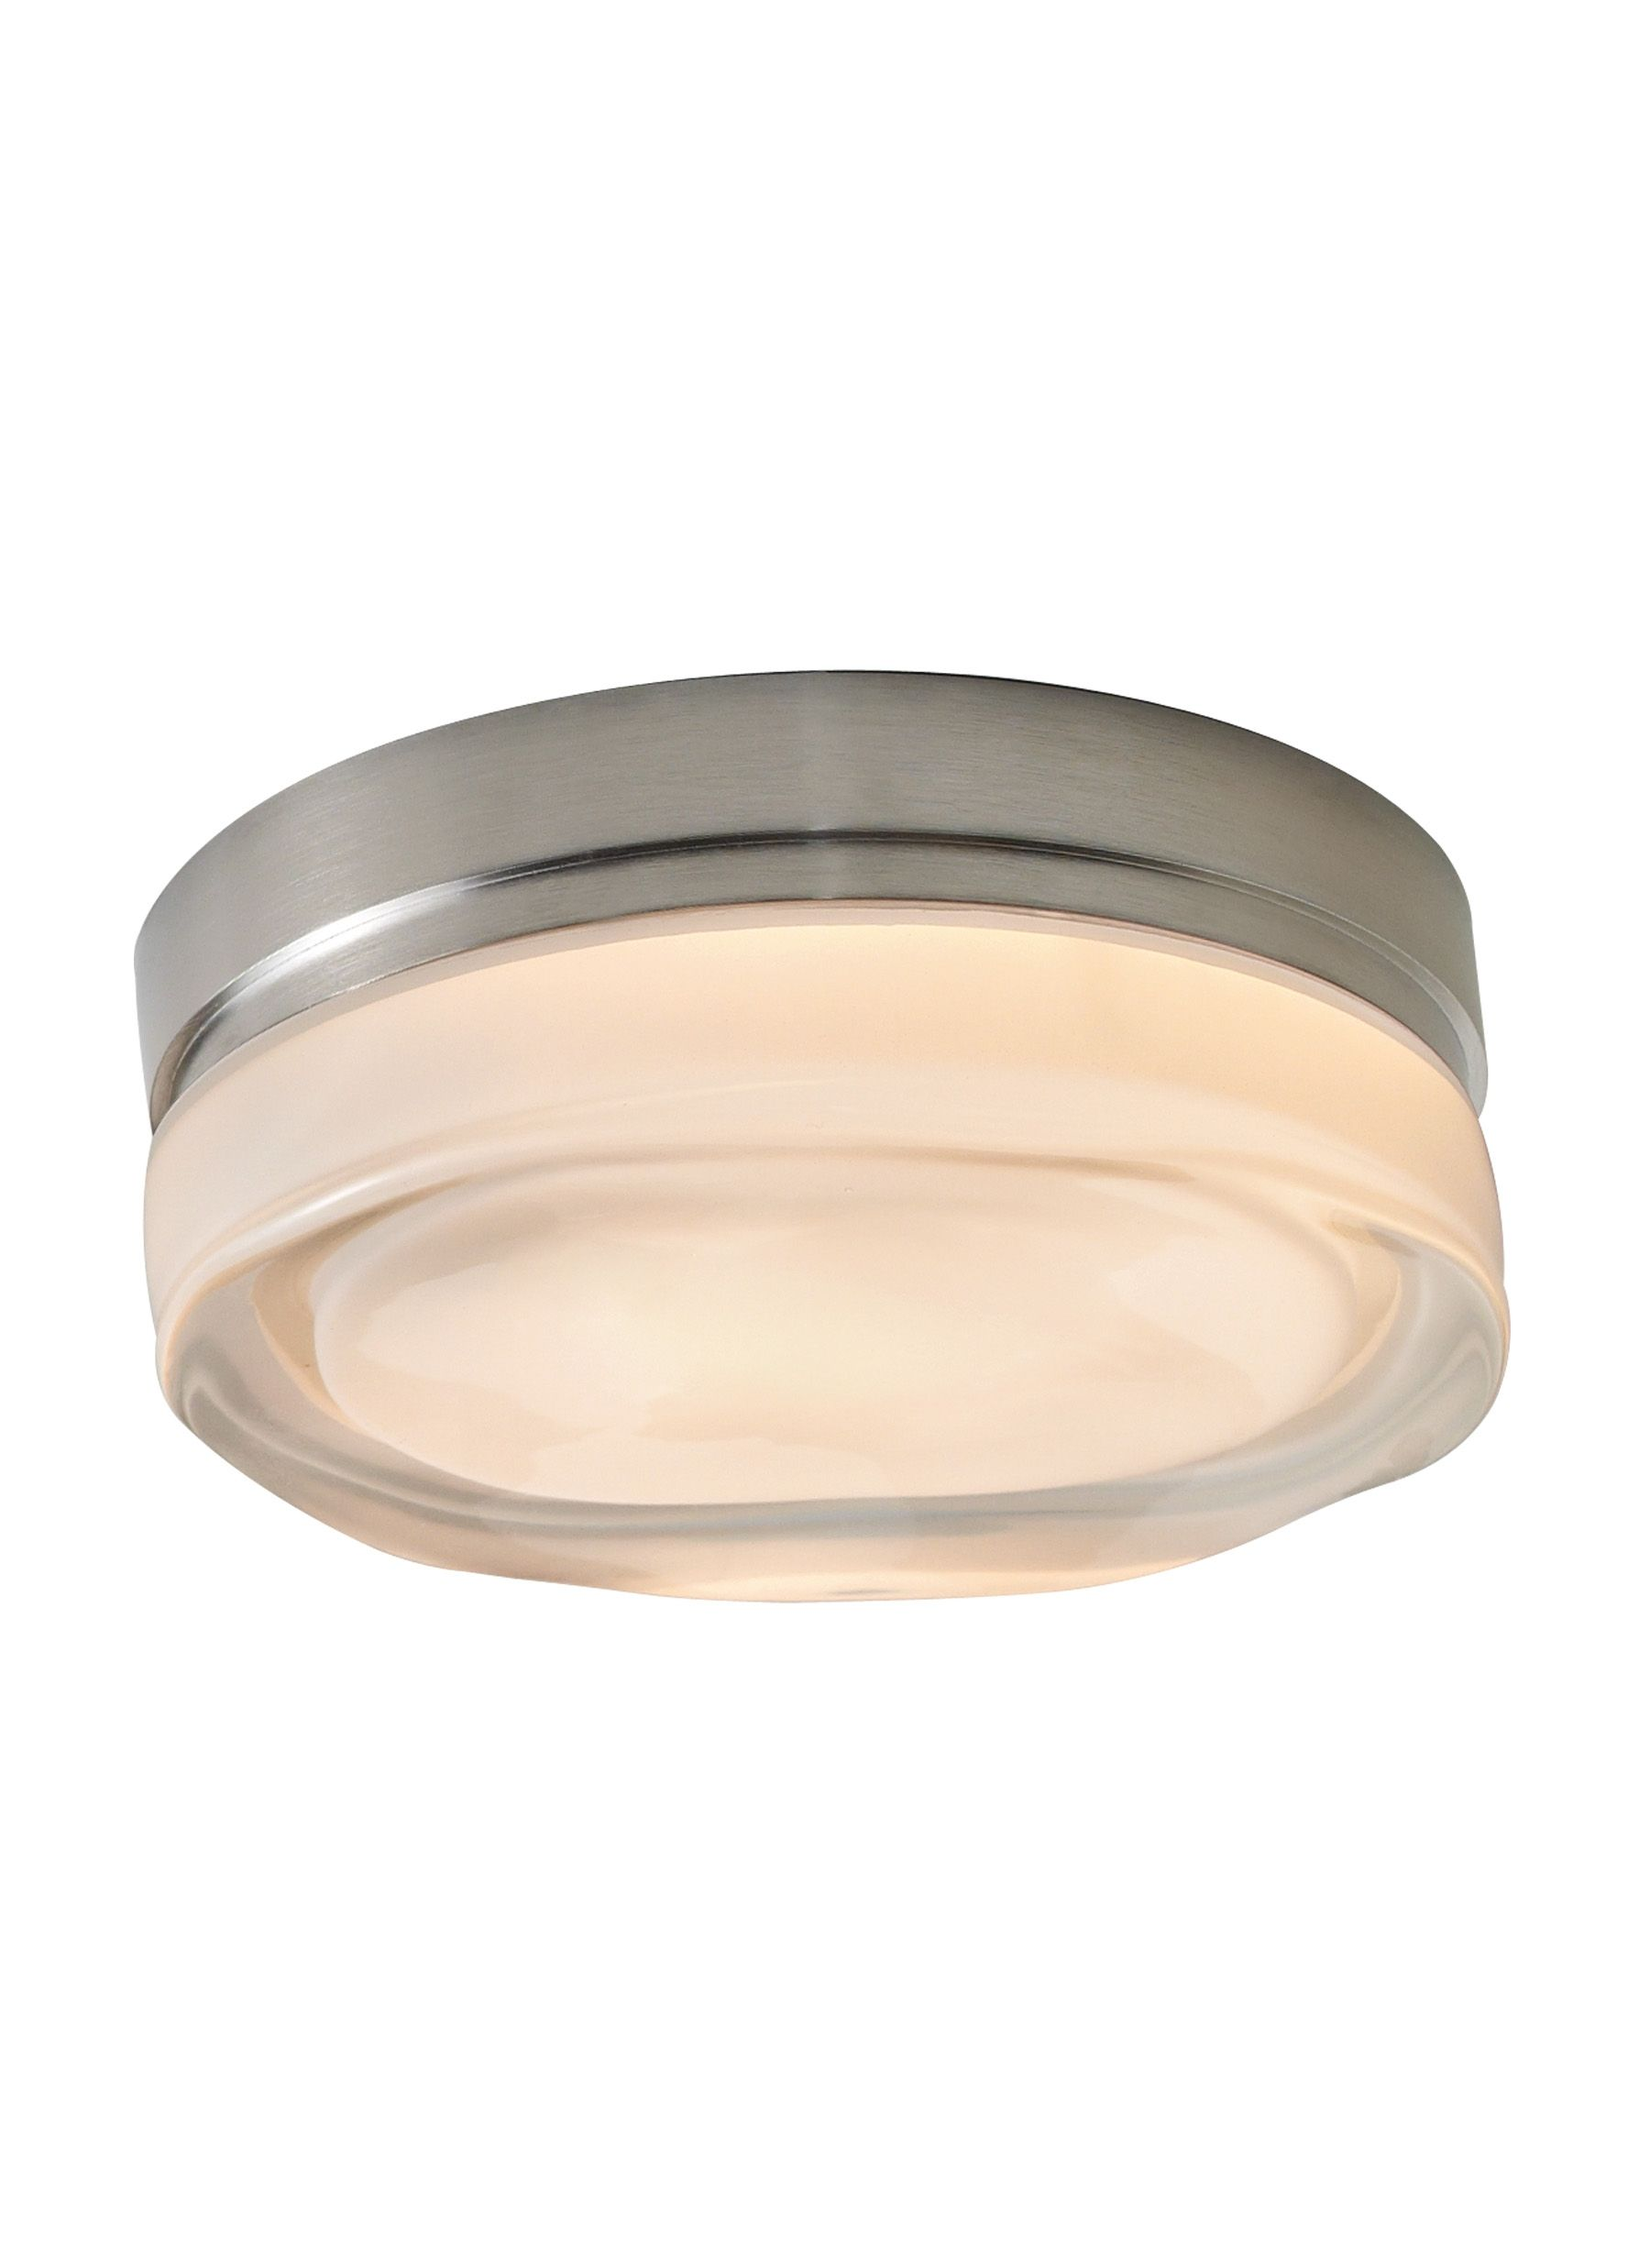 creative bath fan ideas ceiling extremely exhaust design bathroom interesting false for drop with